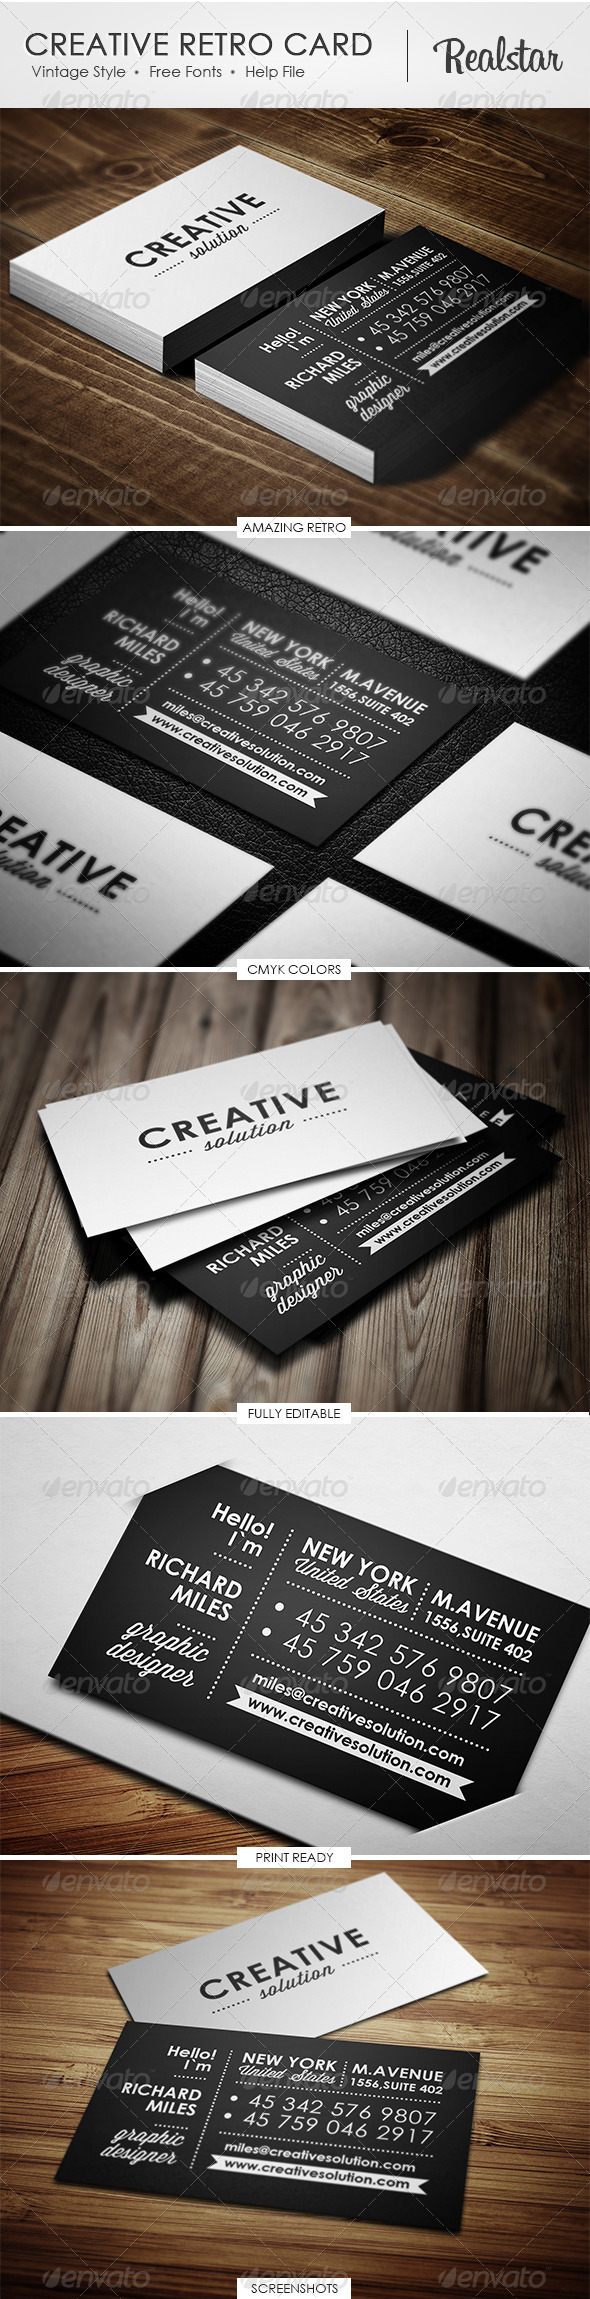 Creative Retro Business Card - Retro/Vintage Business Cards